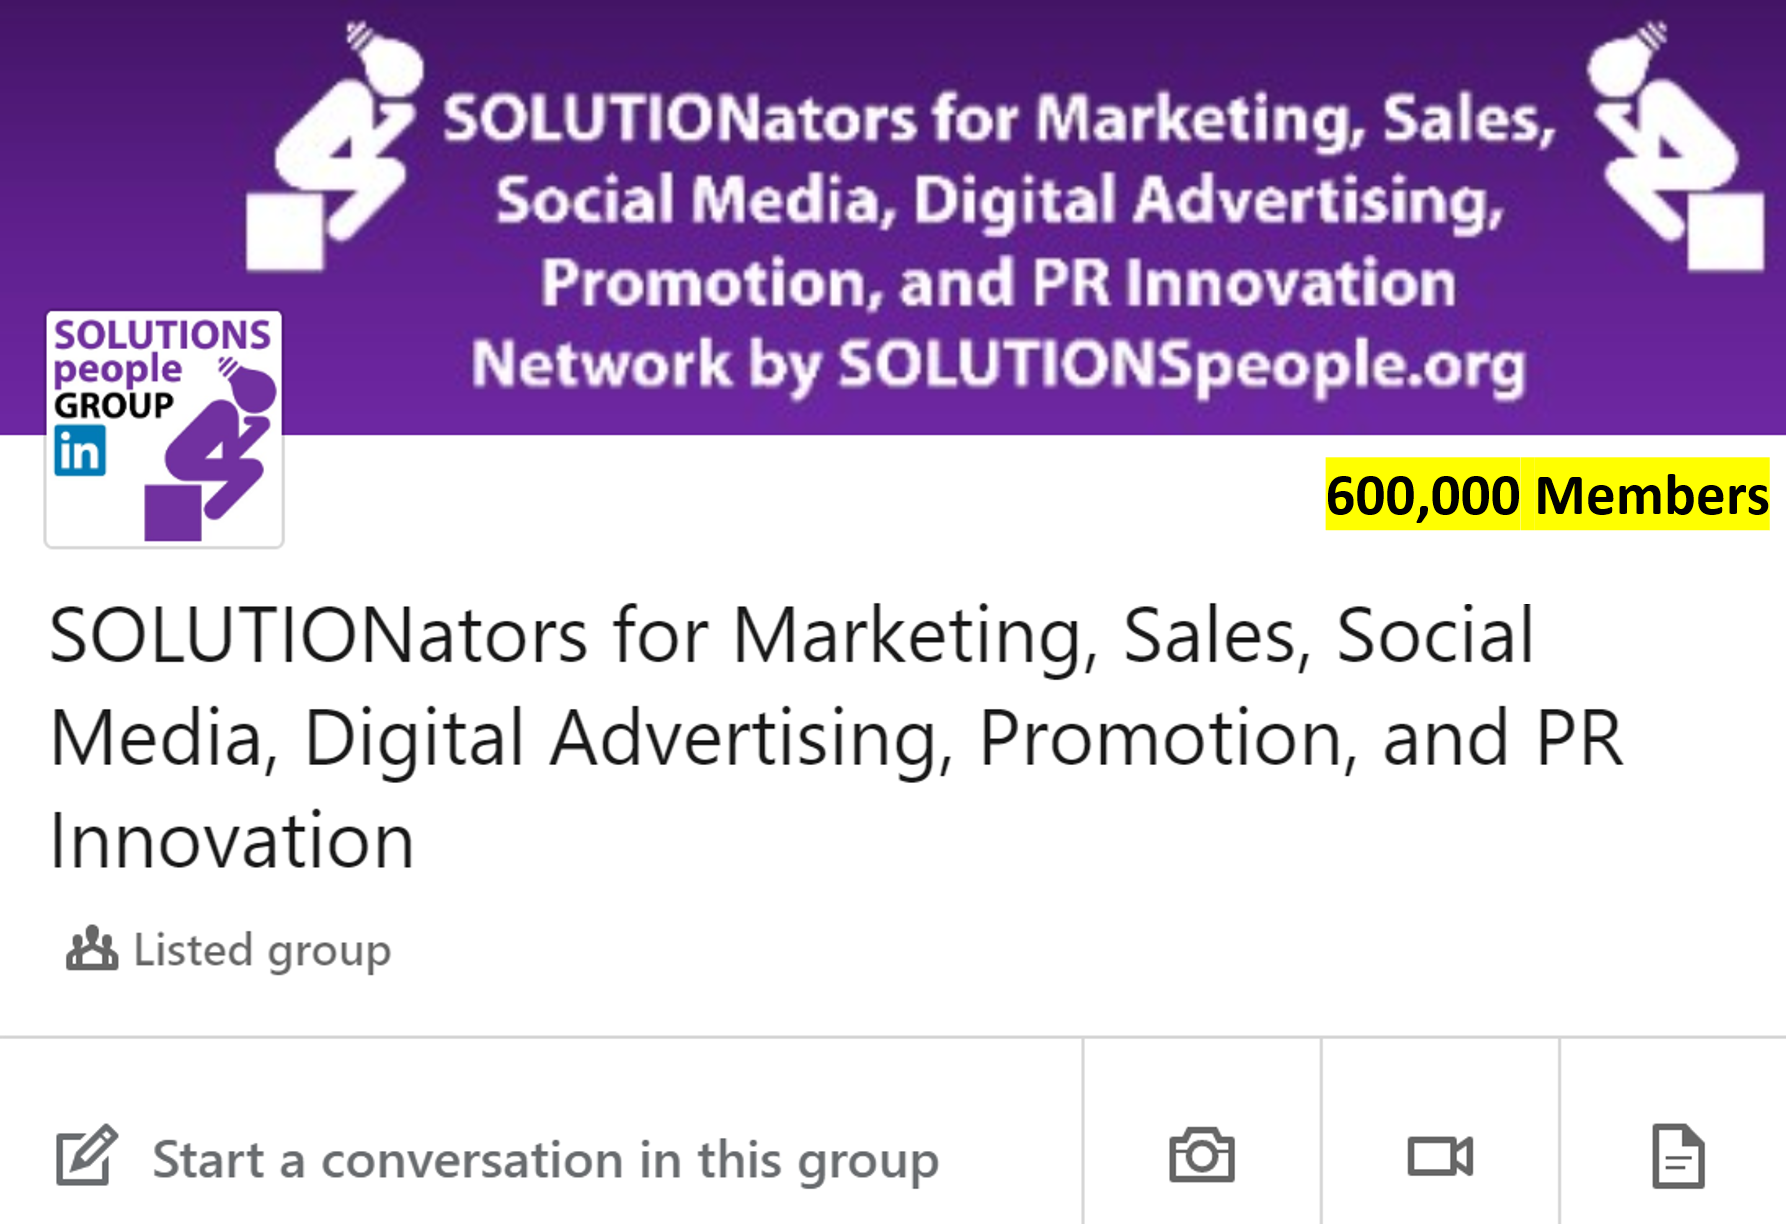 SOLUTIONators Linkedin Group for Marketing, Sales, Social Media, Digital Advertising, Promotion and PR Innovation